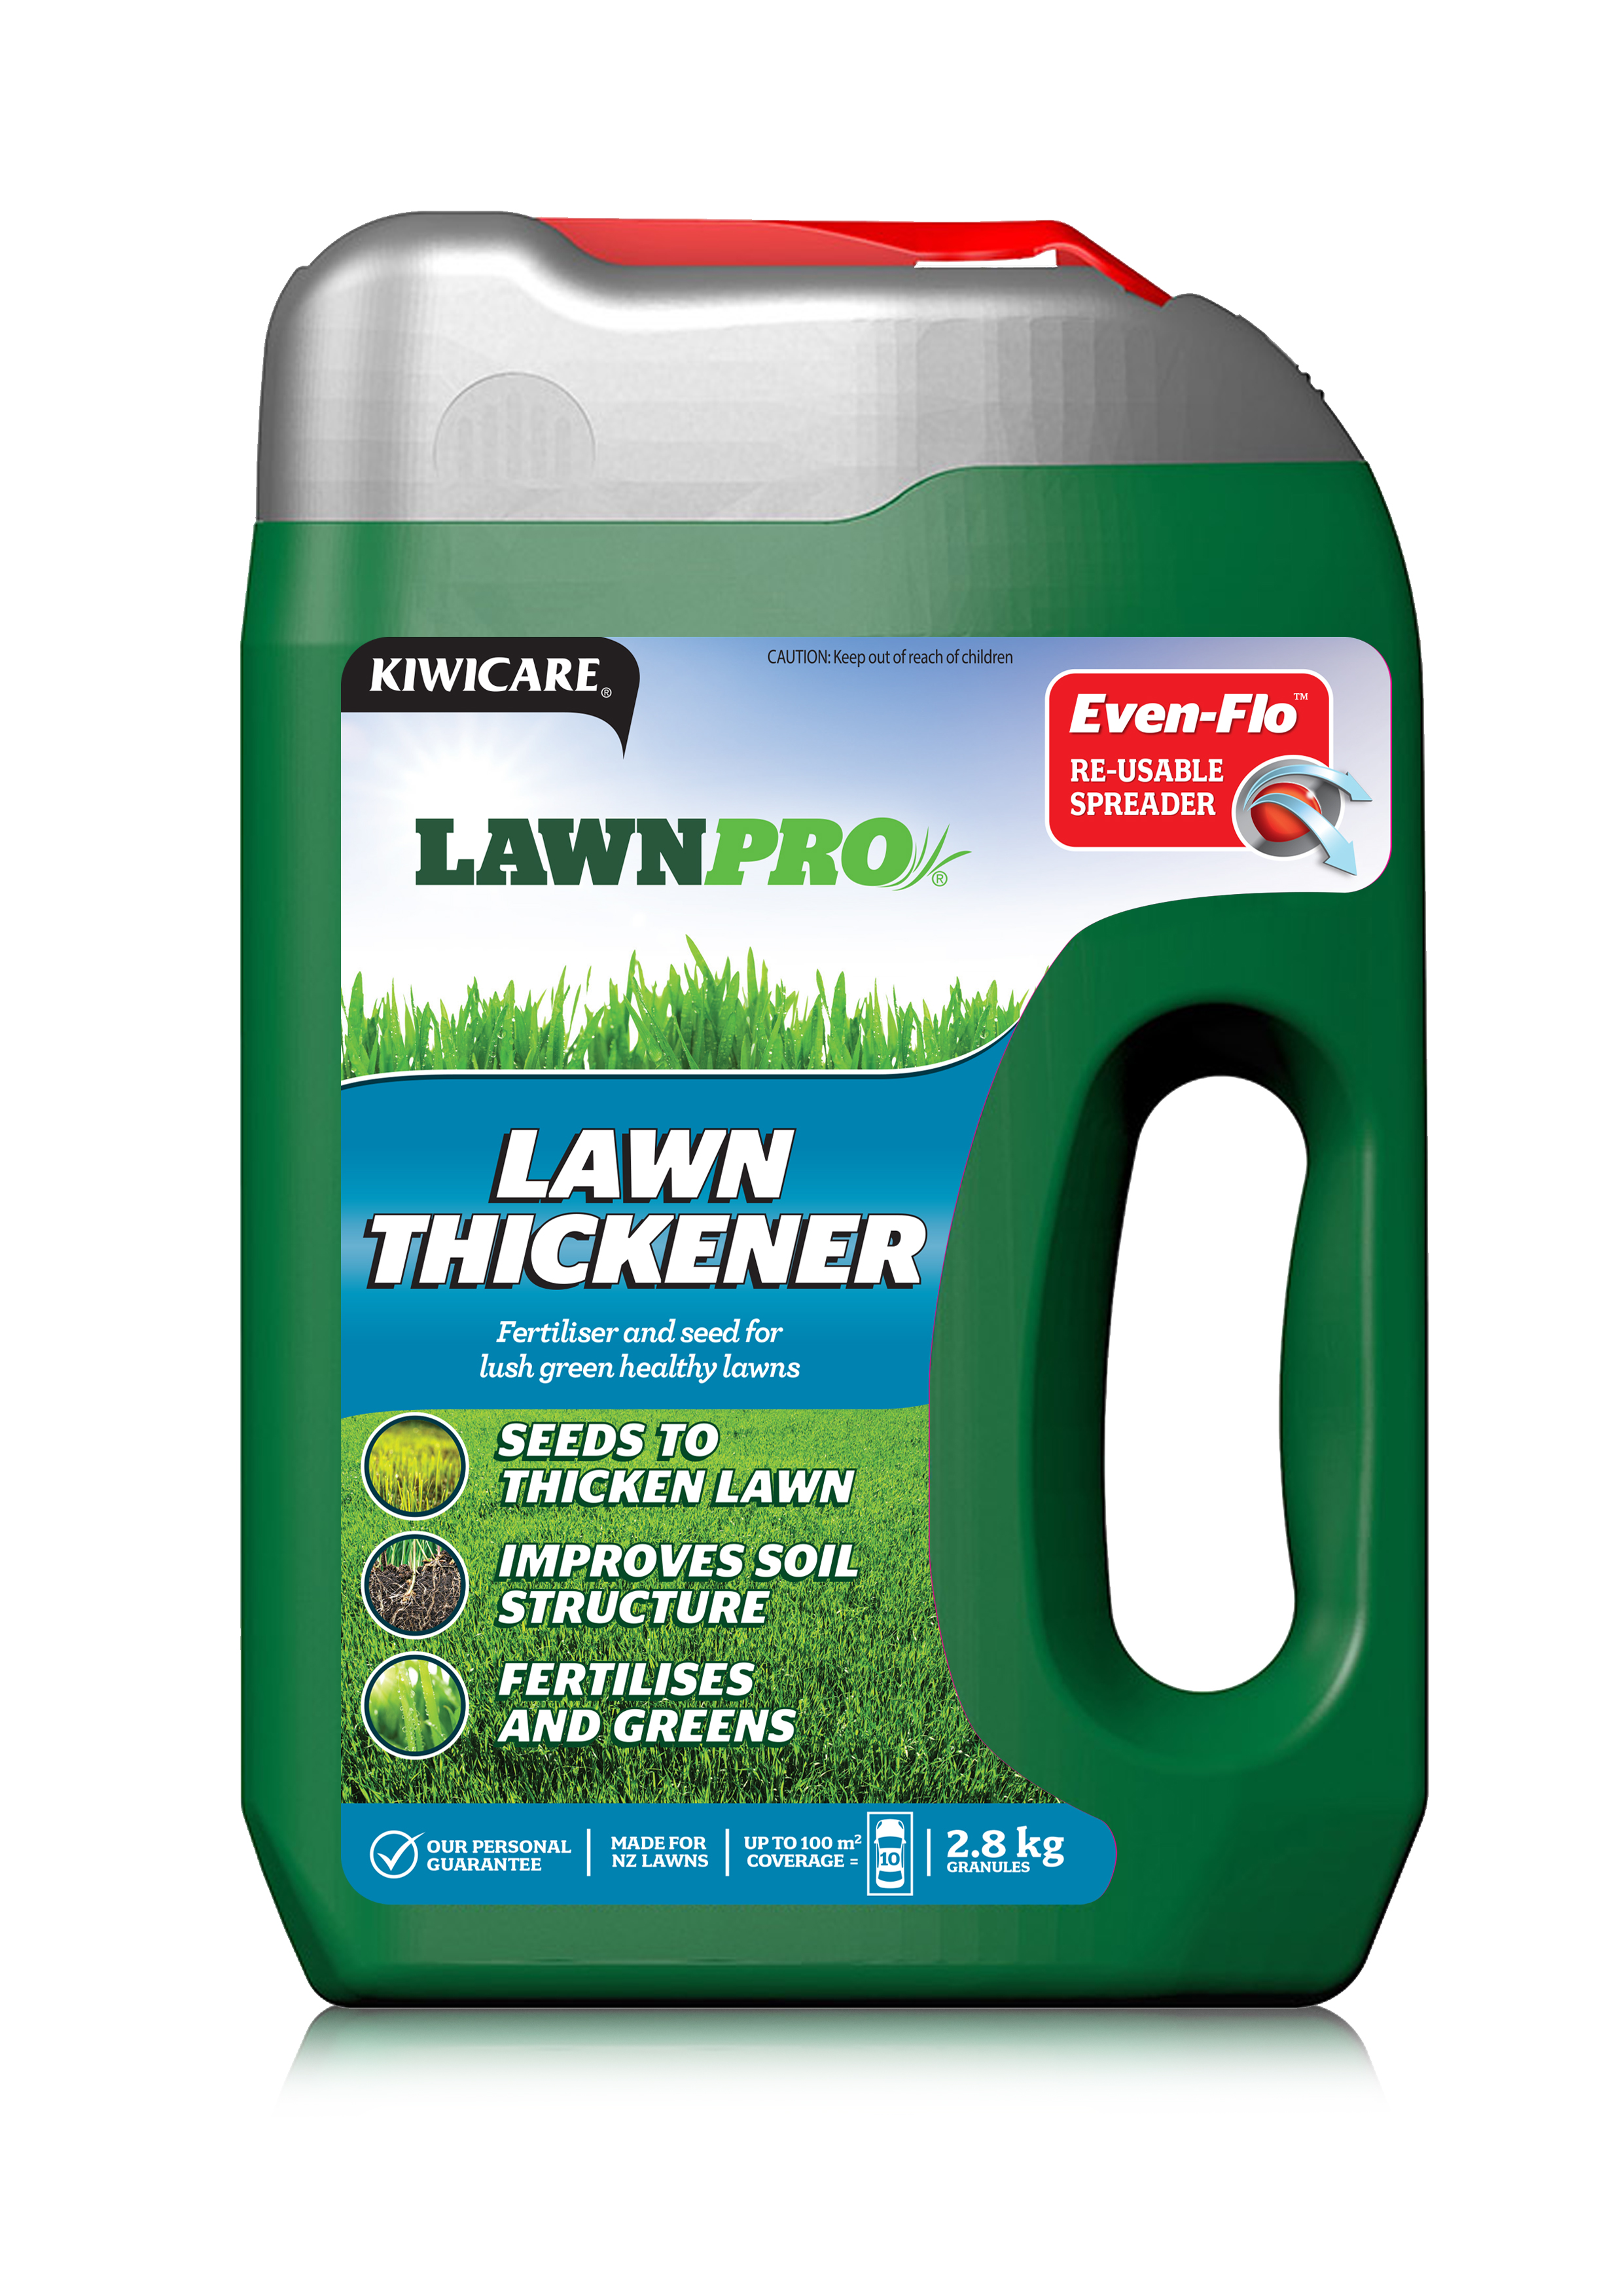 Lawnpro Lawn Thickener For A Thicker And Healthier Lawn